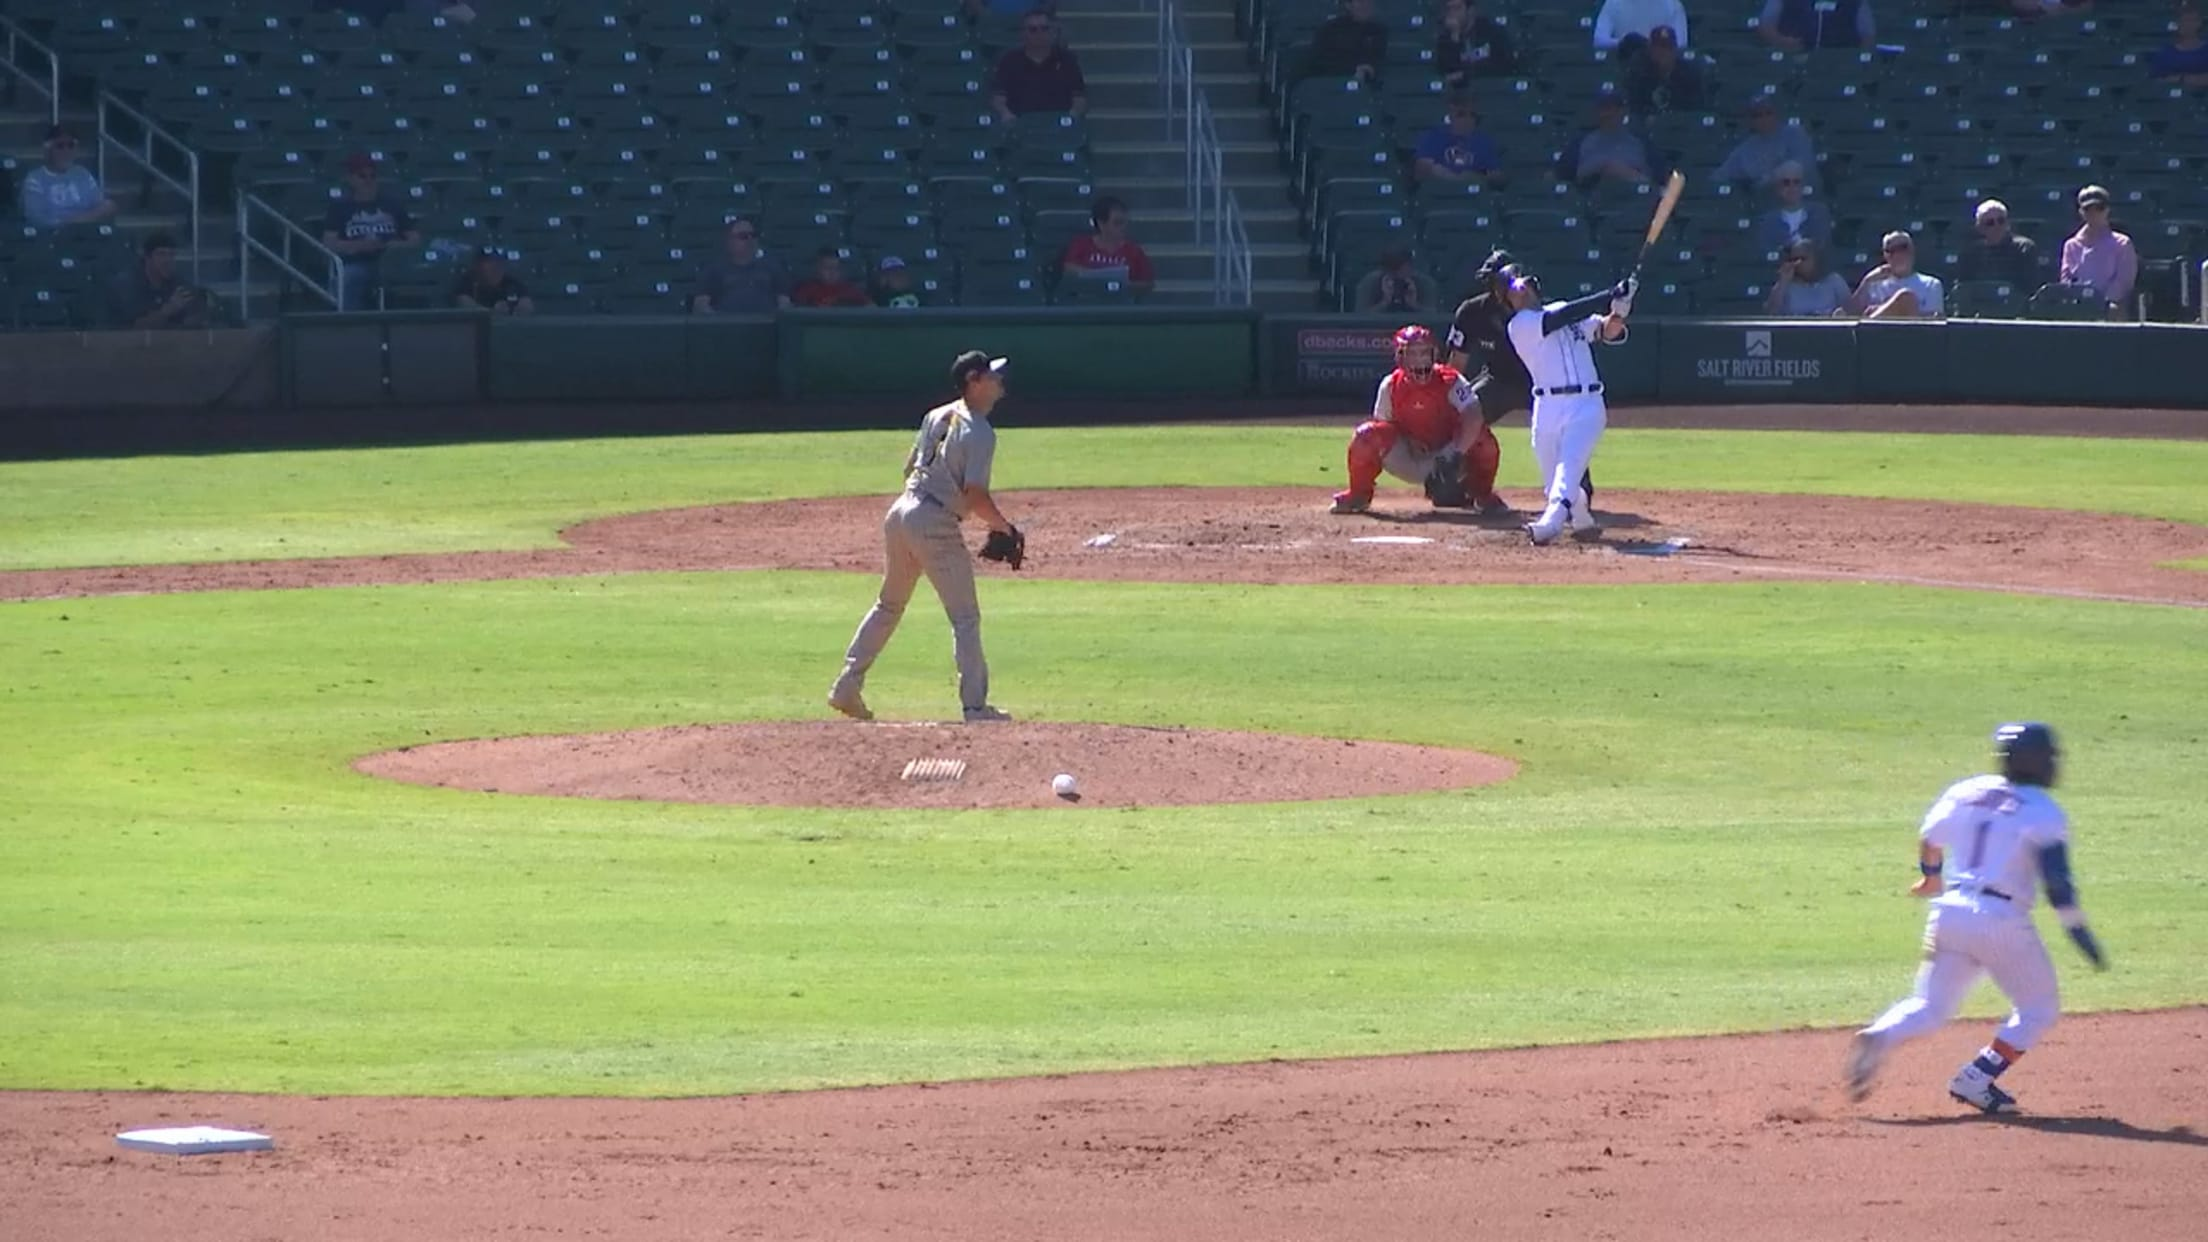 Torkelson's two-run double